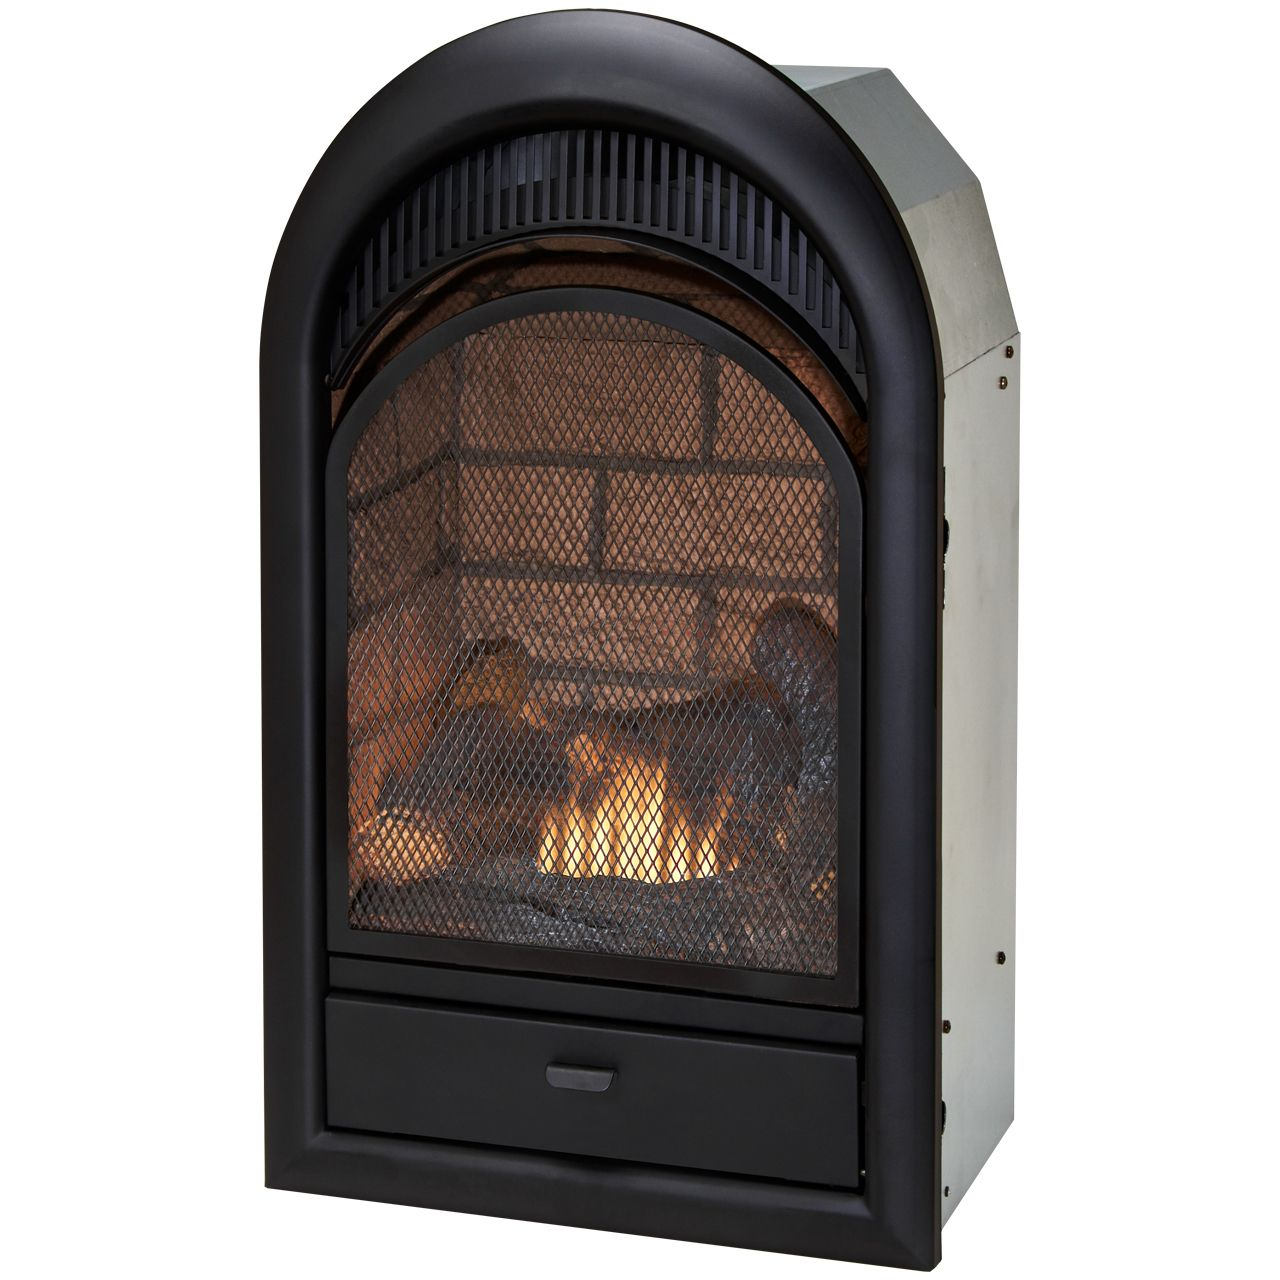 Duluth Forge Dual Fuel Vent Free Fireplace Insert 15 000 Btu T Stat Brick Liner Model Fdf150 Gas Fireplace Insert Natural Gas Fireplace Fireplace Inserts